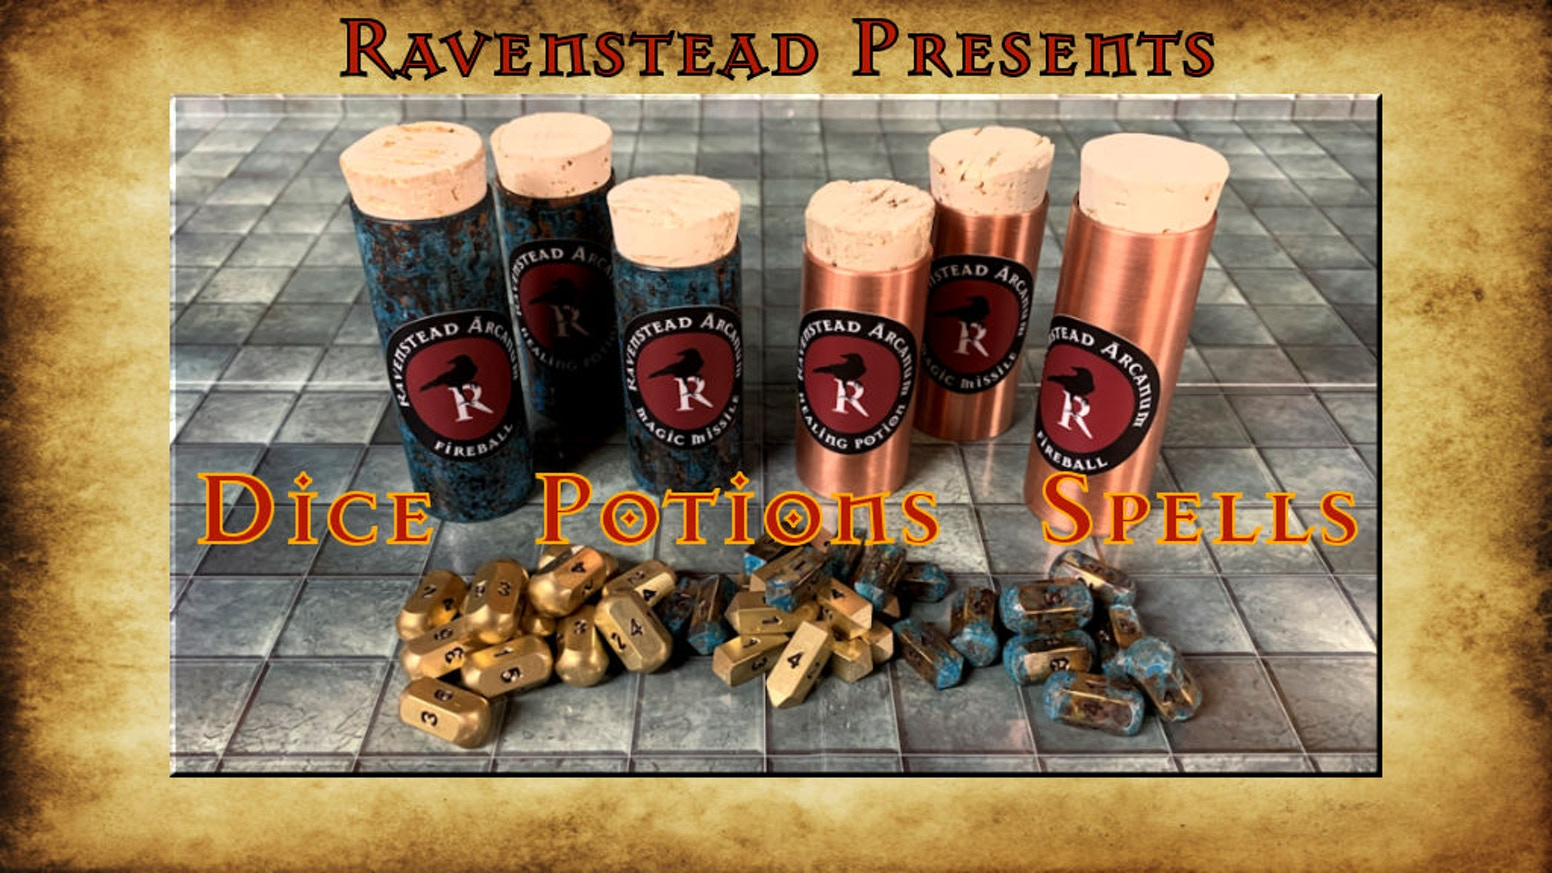 Handmade Brass Dice and Copper Bottles for Casting Magic in Role Playing Games